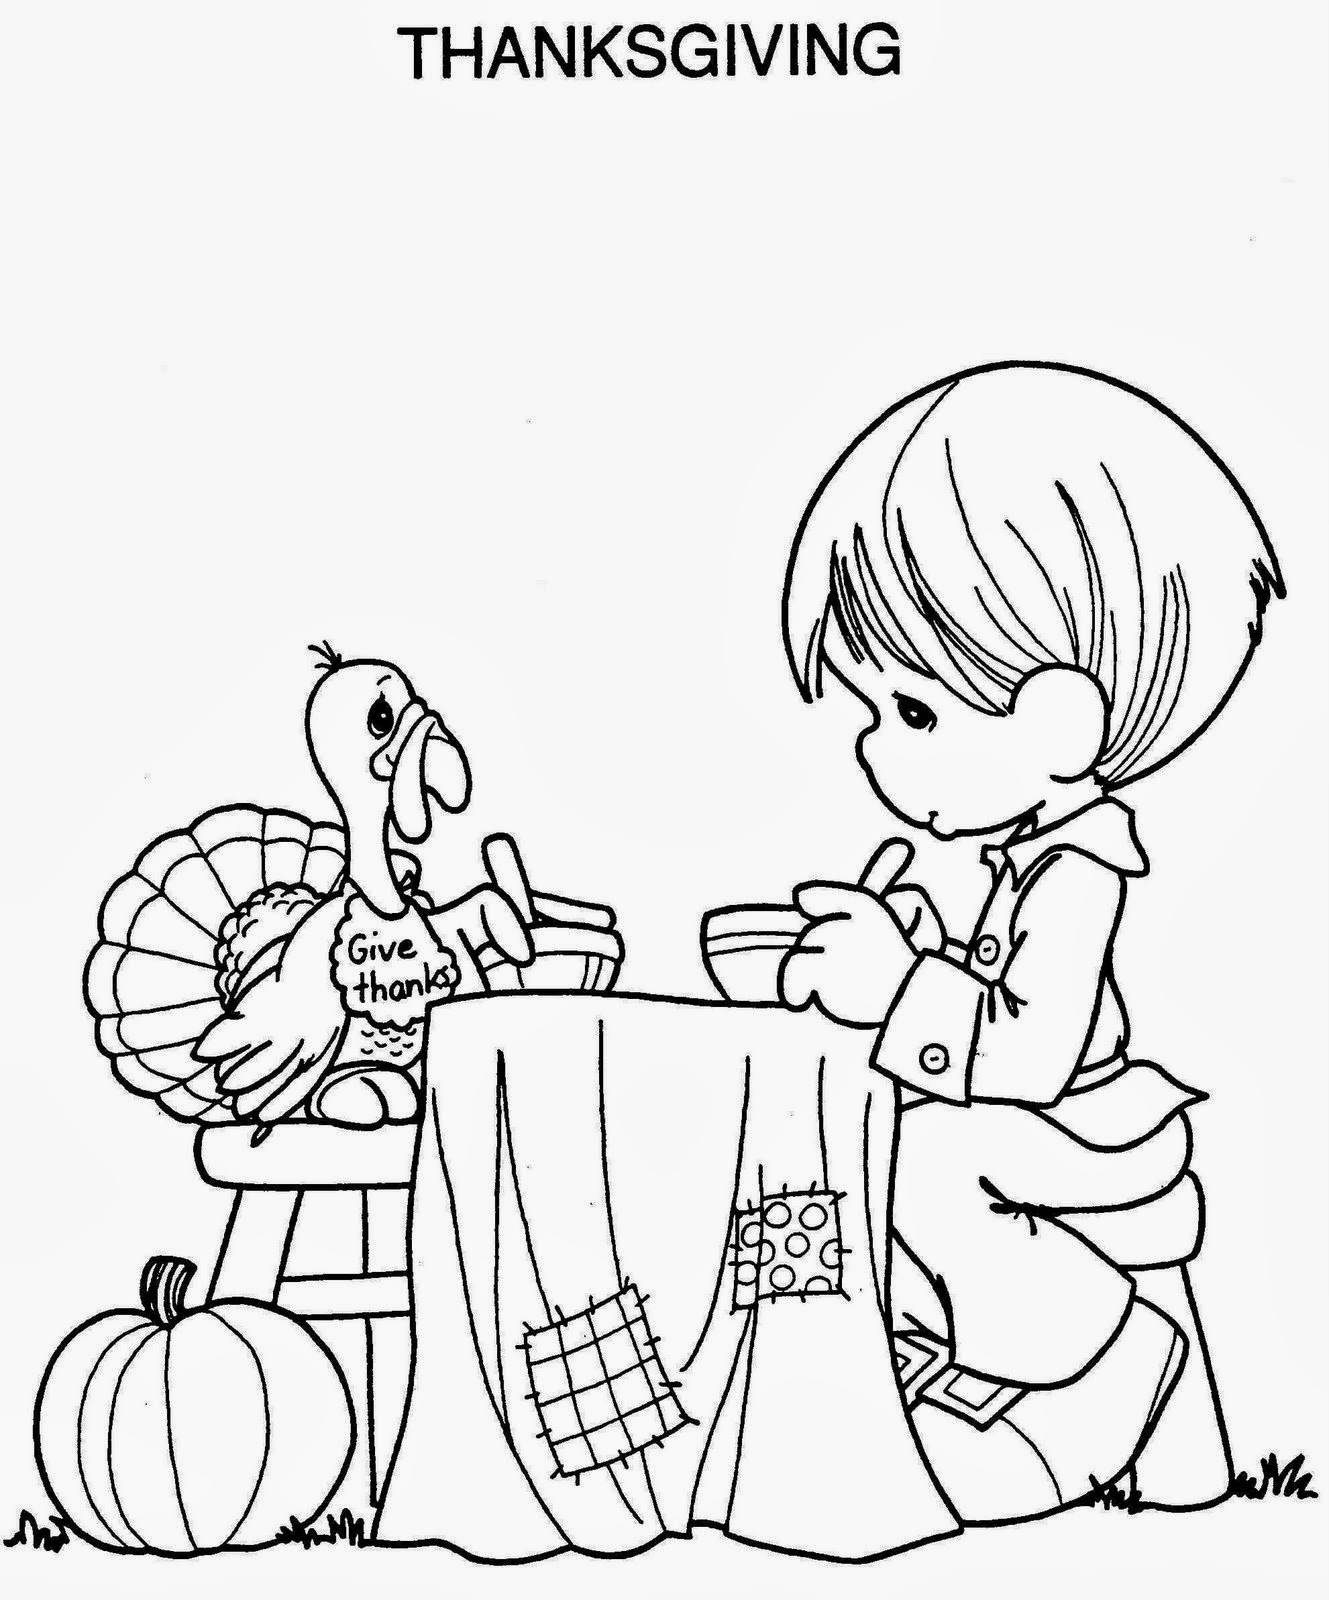 List Thanksgiving Day for Coloring part 1